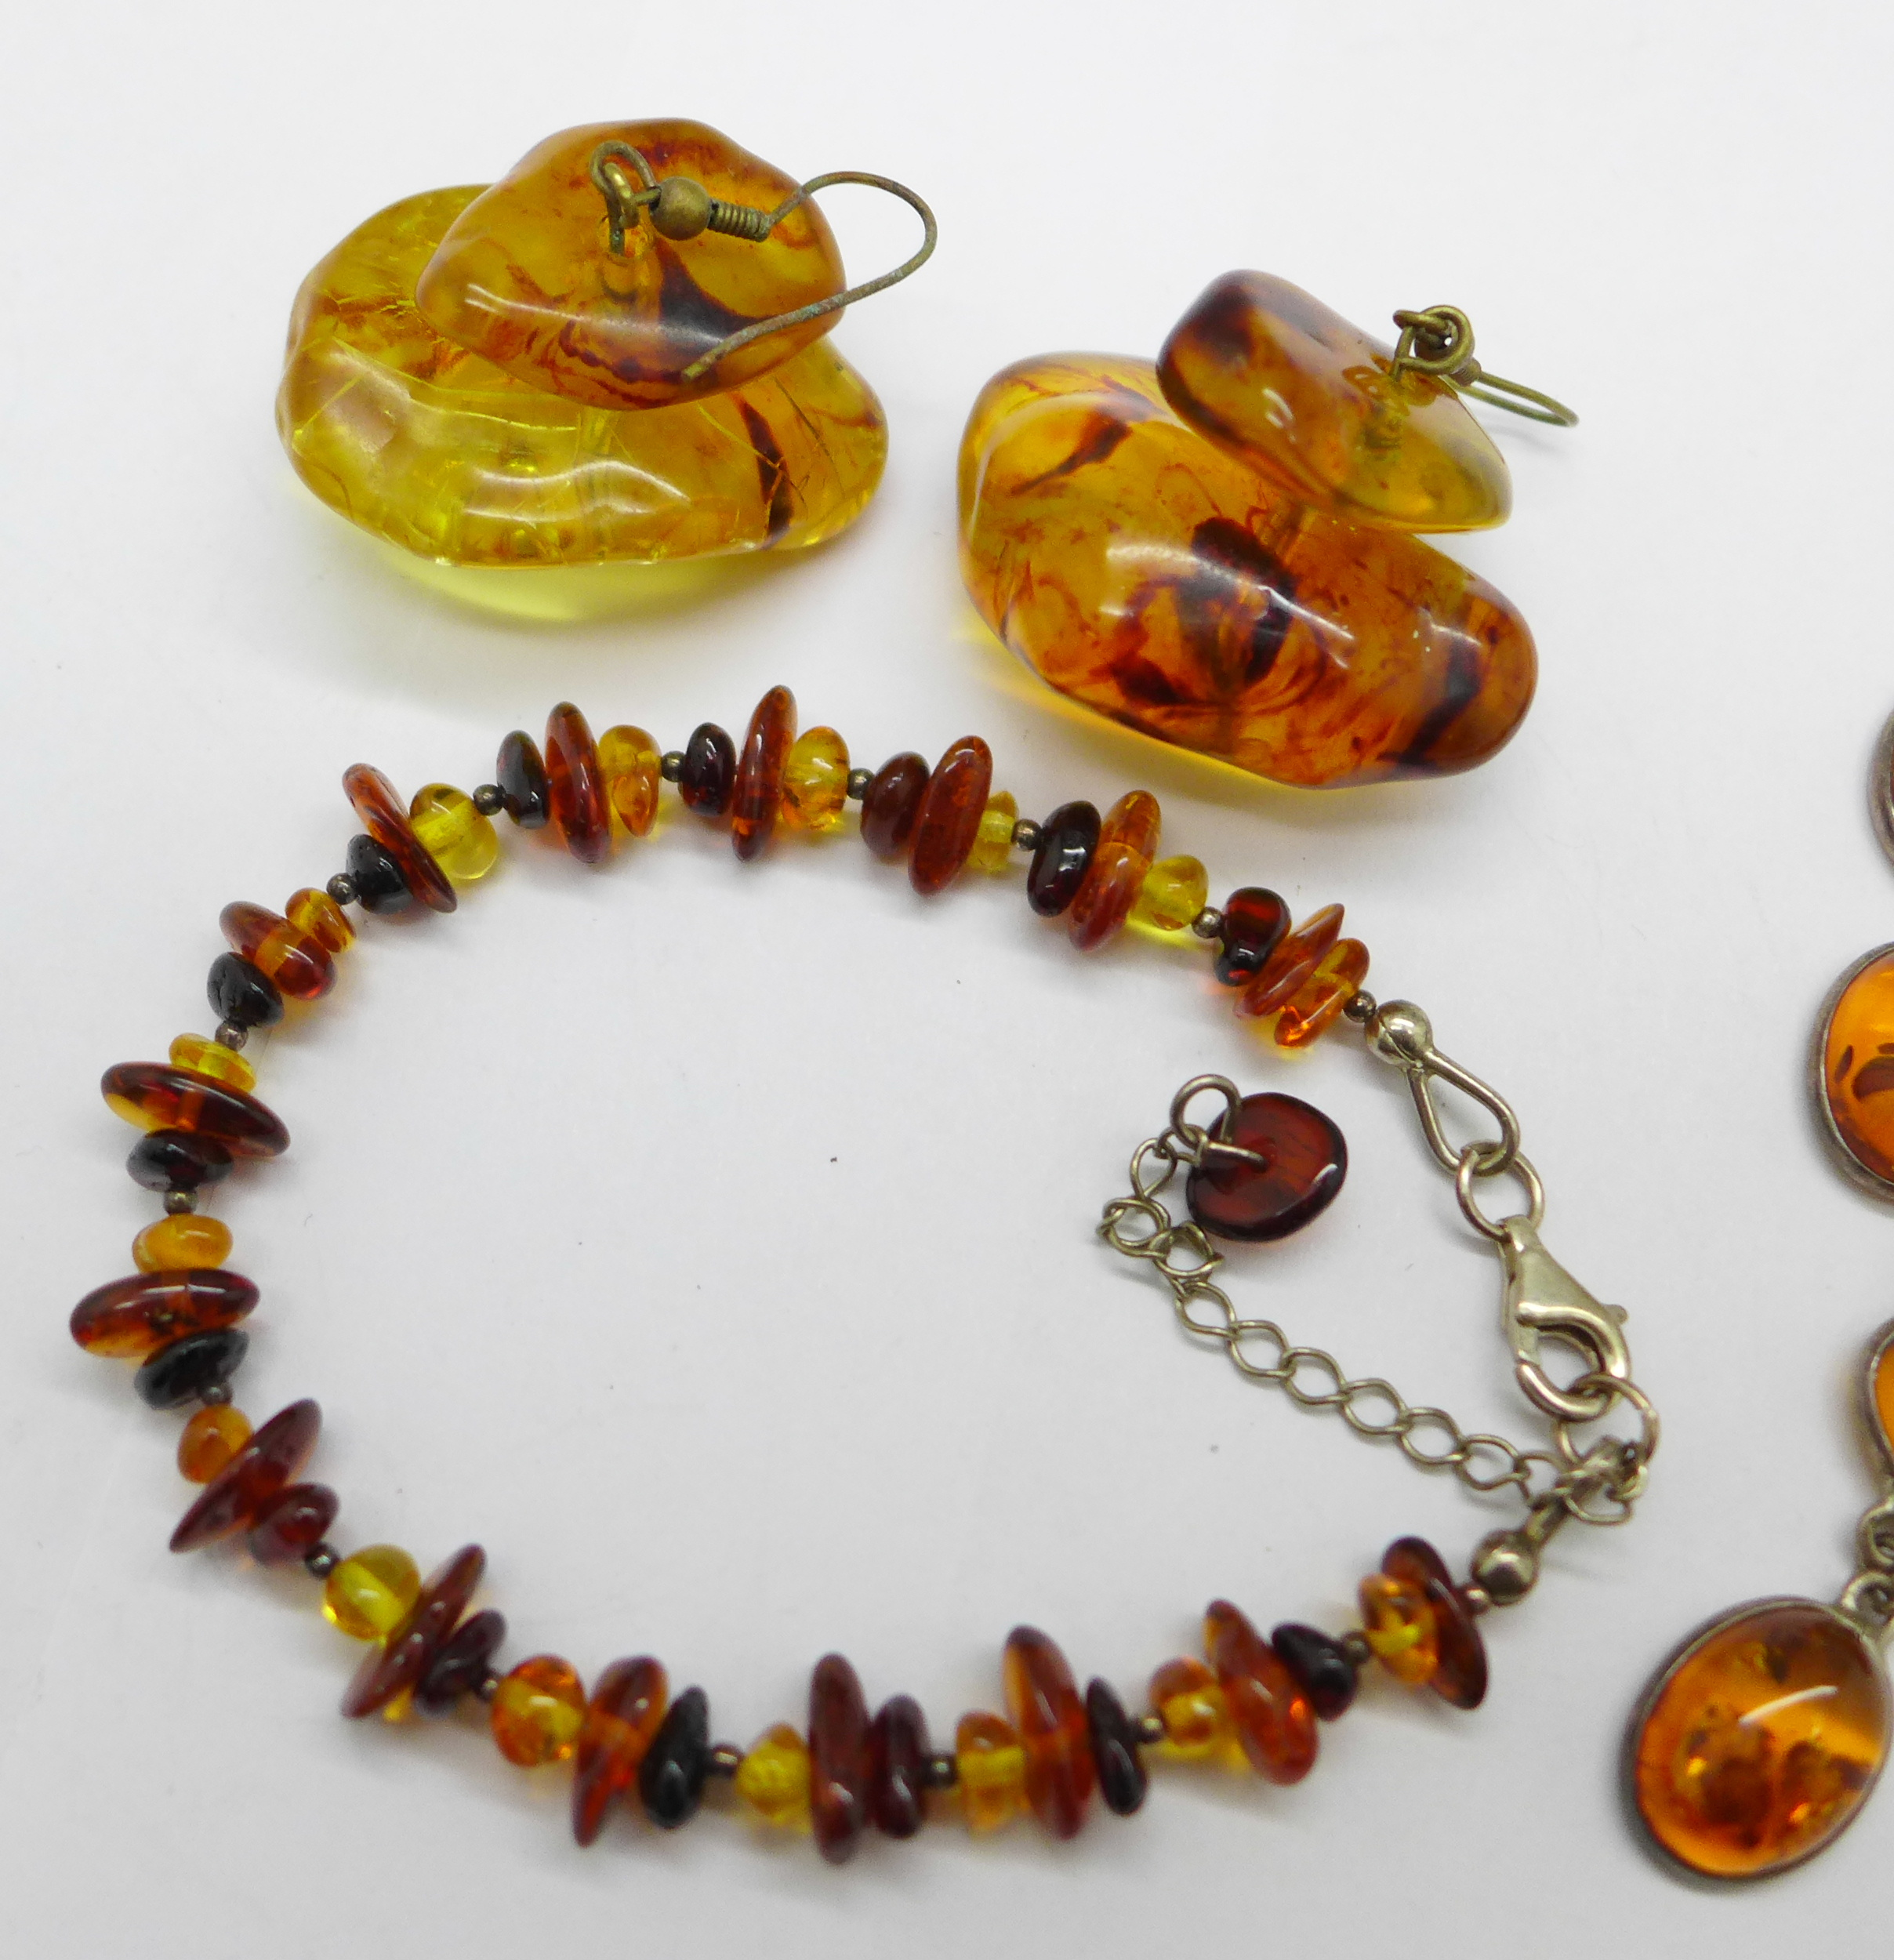 Amber coloured jewellery comprising a bracelet, earrings and a necklace - Image 3 of 3